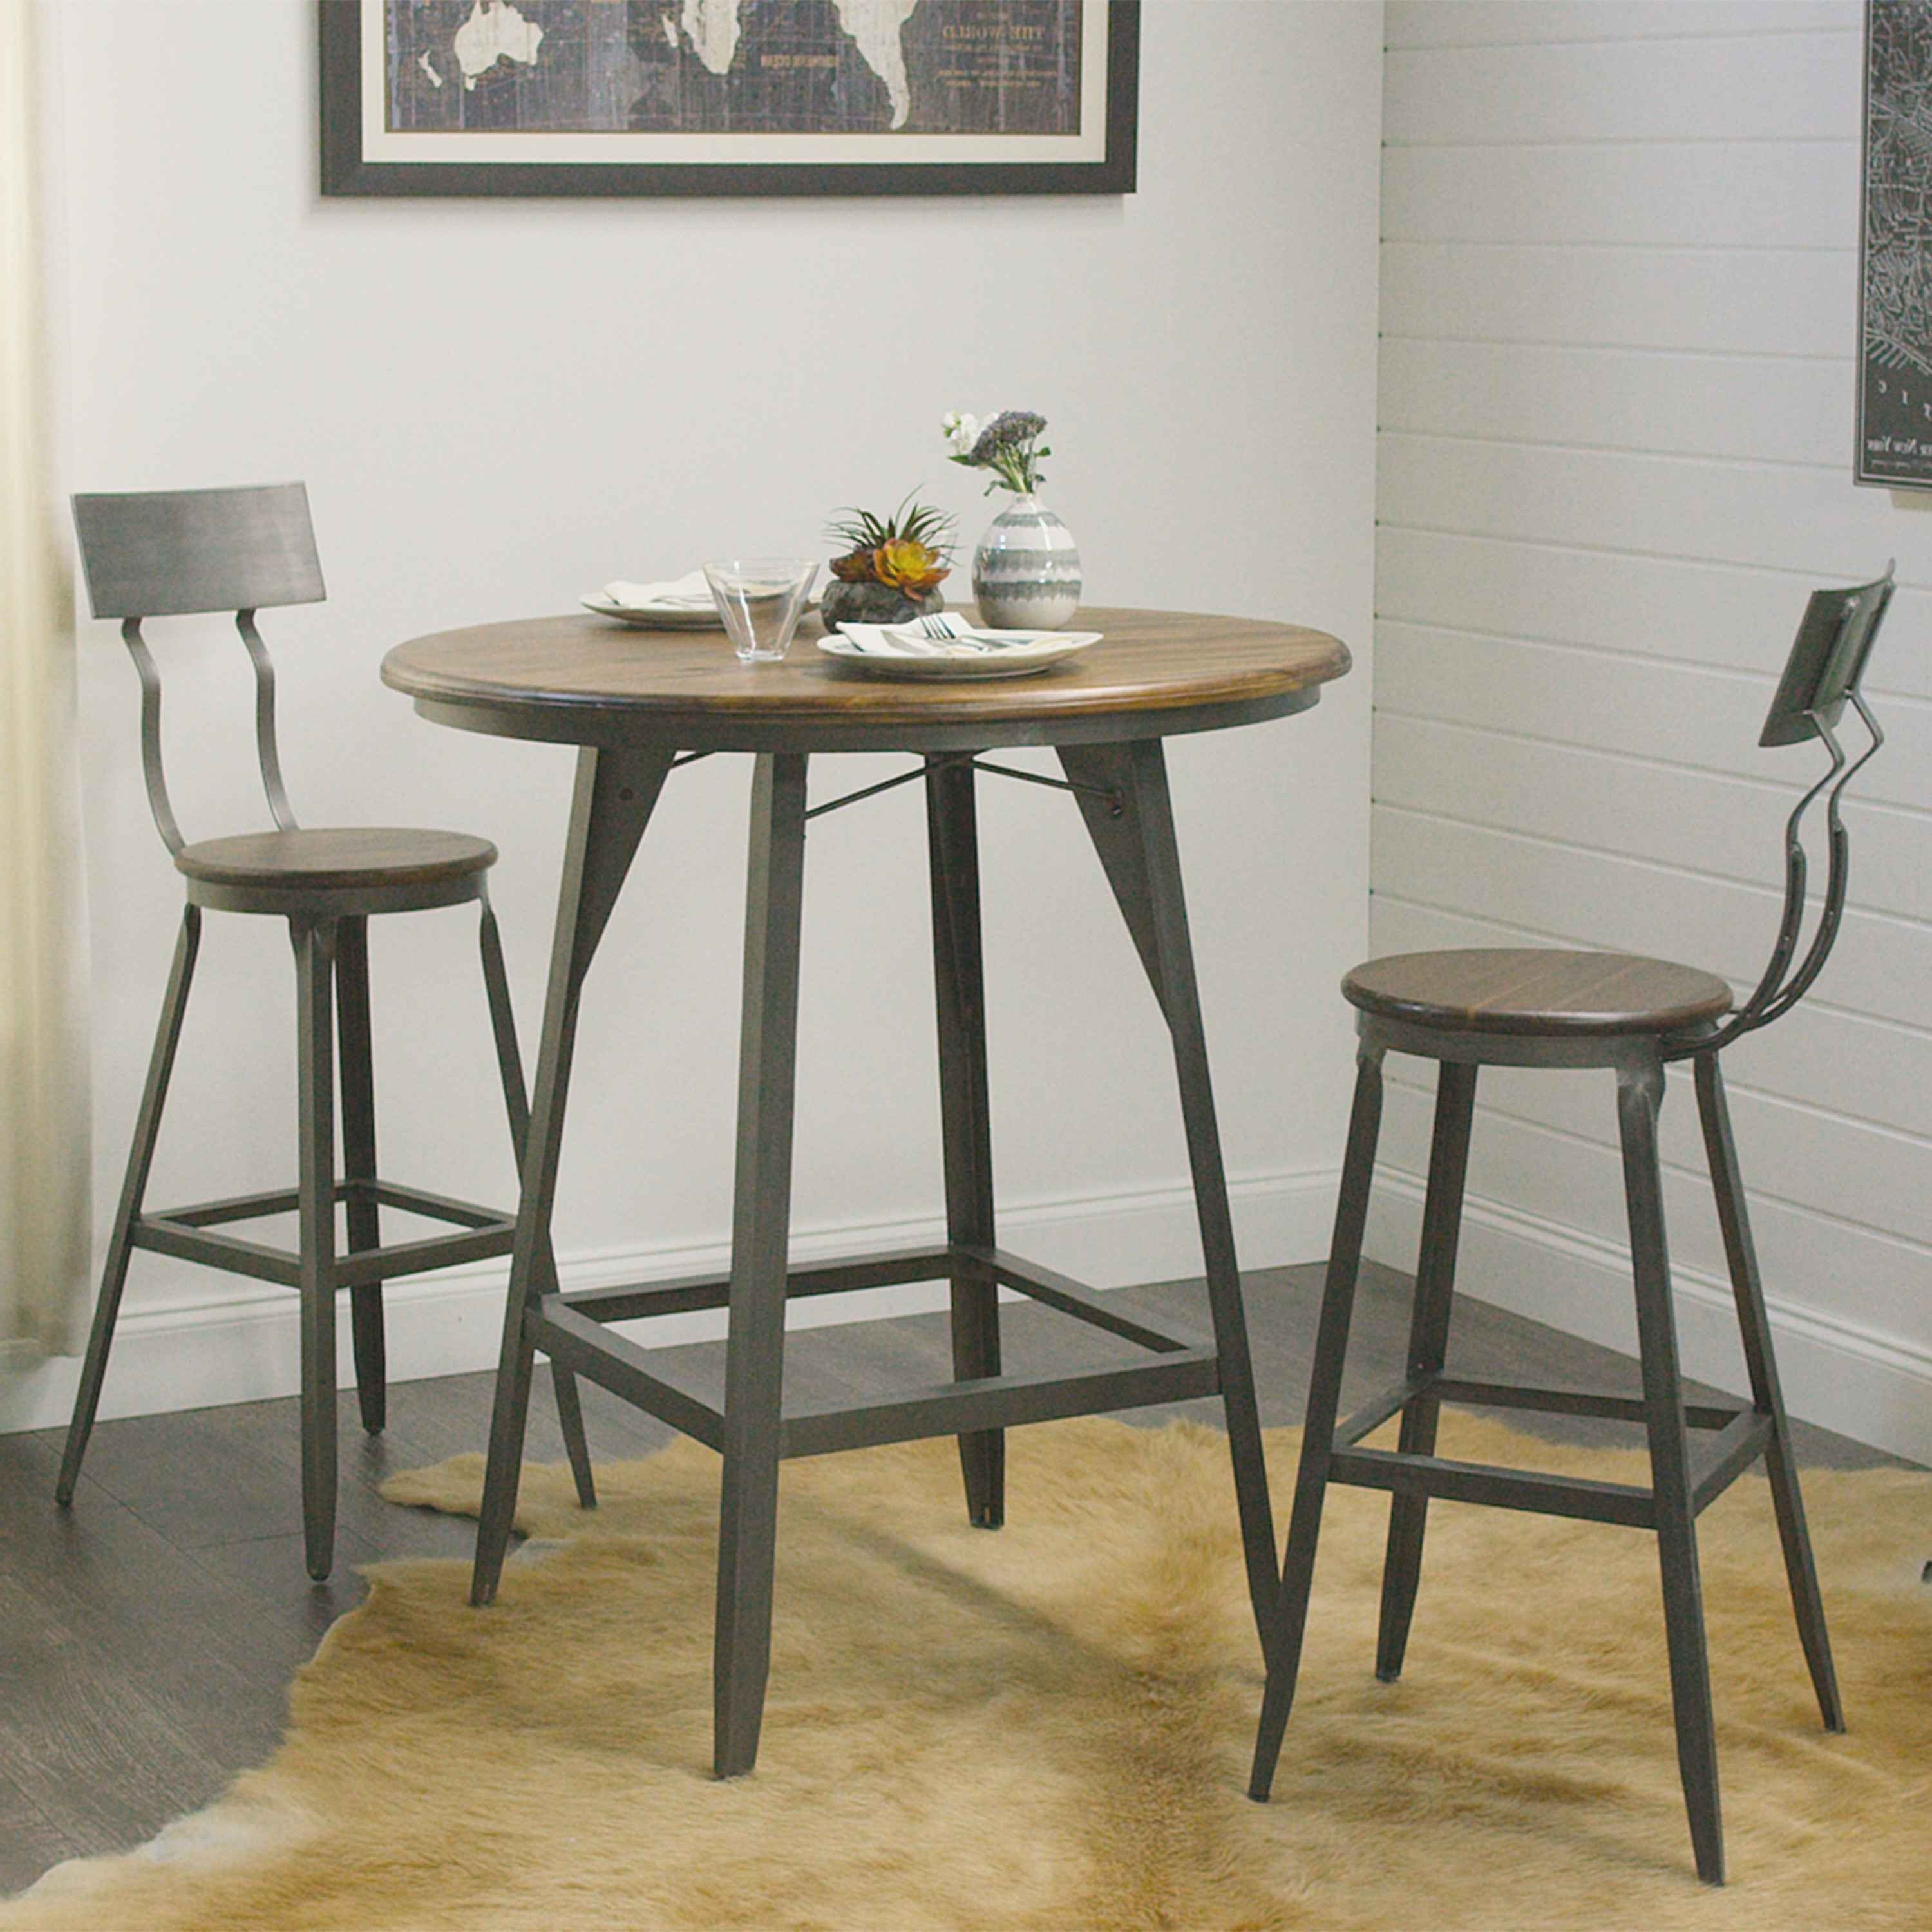 Most Popular Small Dining Tables For 2 In Small Dining Table For Two Beautiful 29 Pleasing Small Dining Room (View 6 of 25)